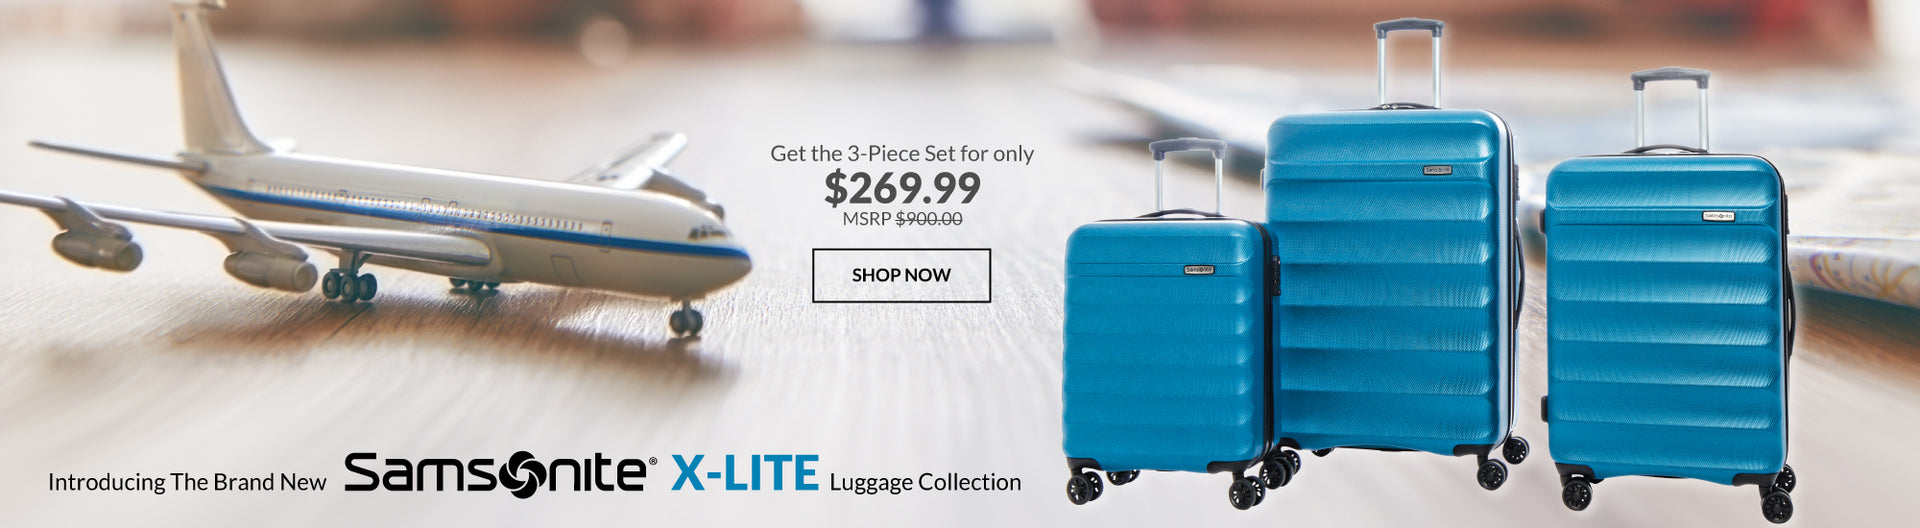 Samsonite X-Lite Luggage Sale - Canada Luggage Depot